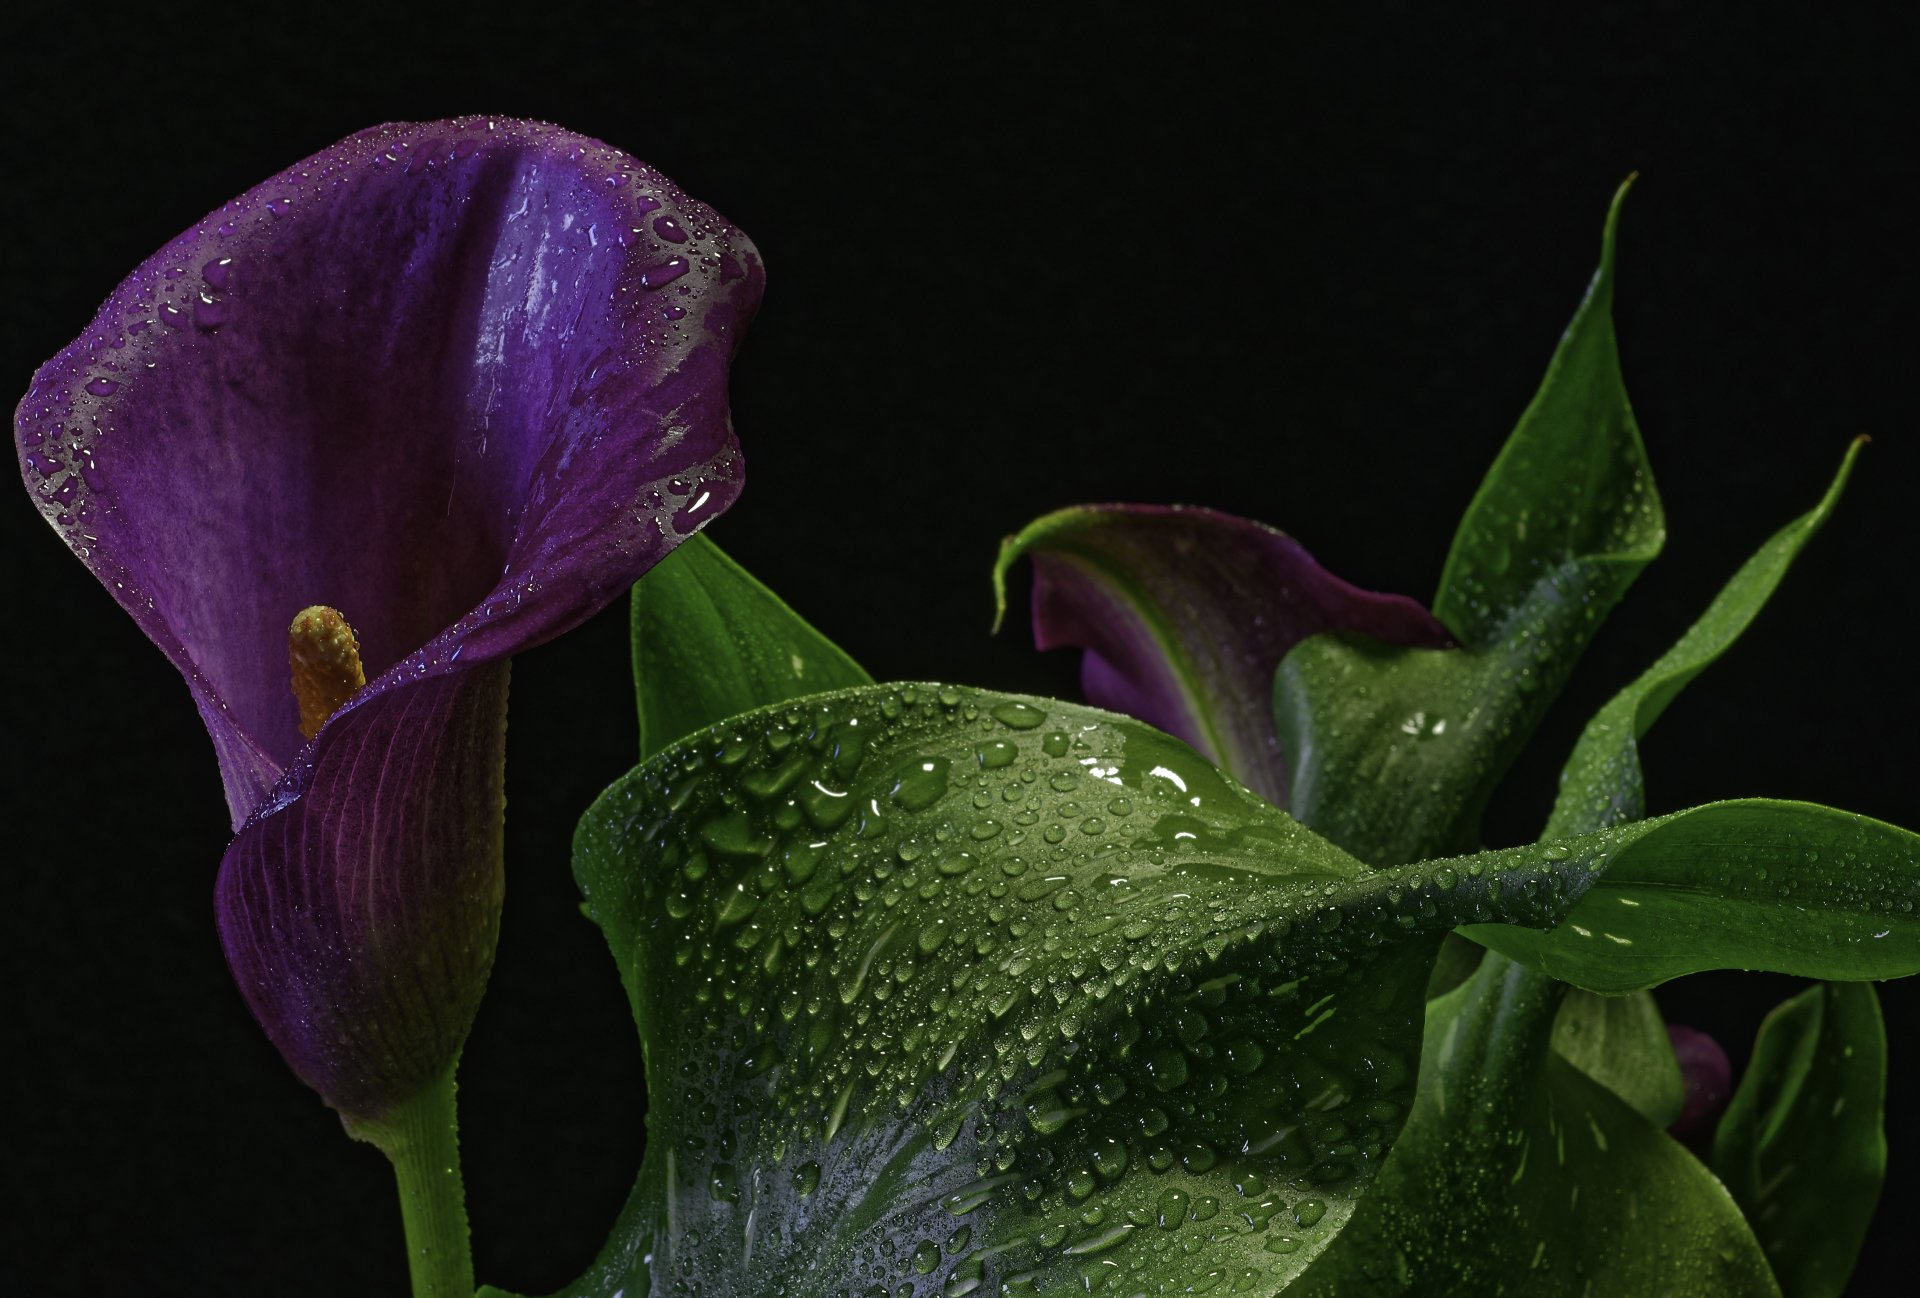 calla lily 4k ultra hd wallpaper background image